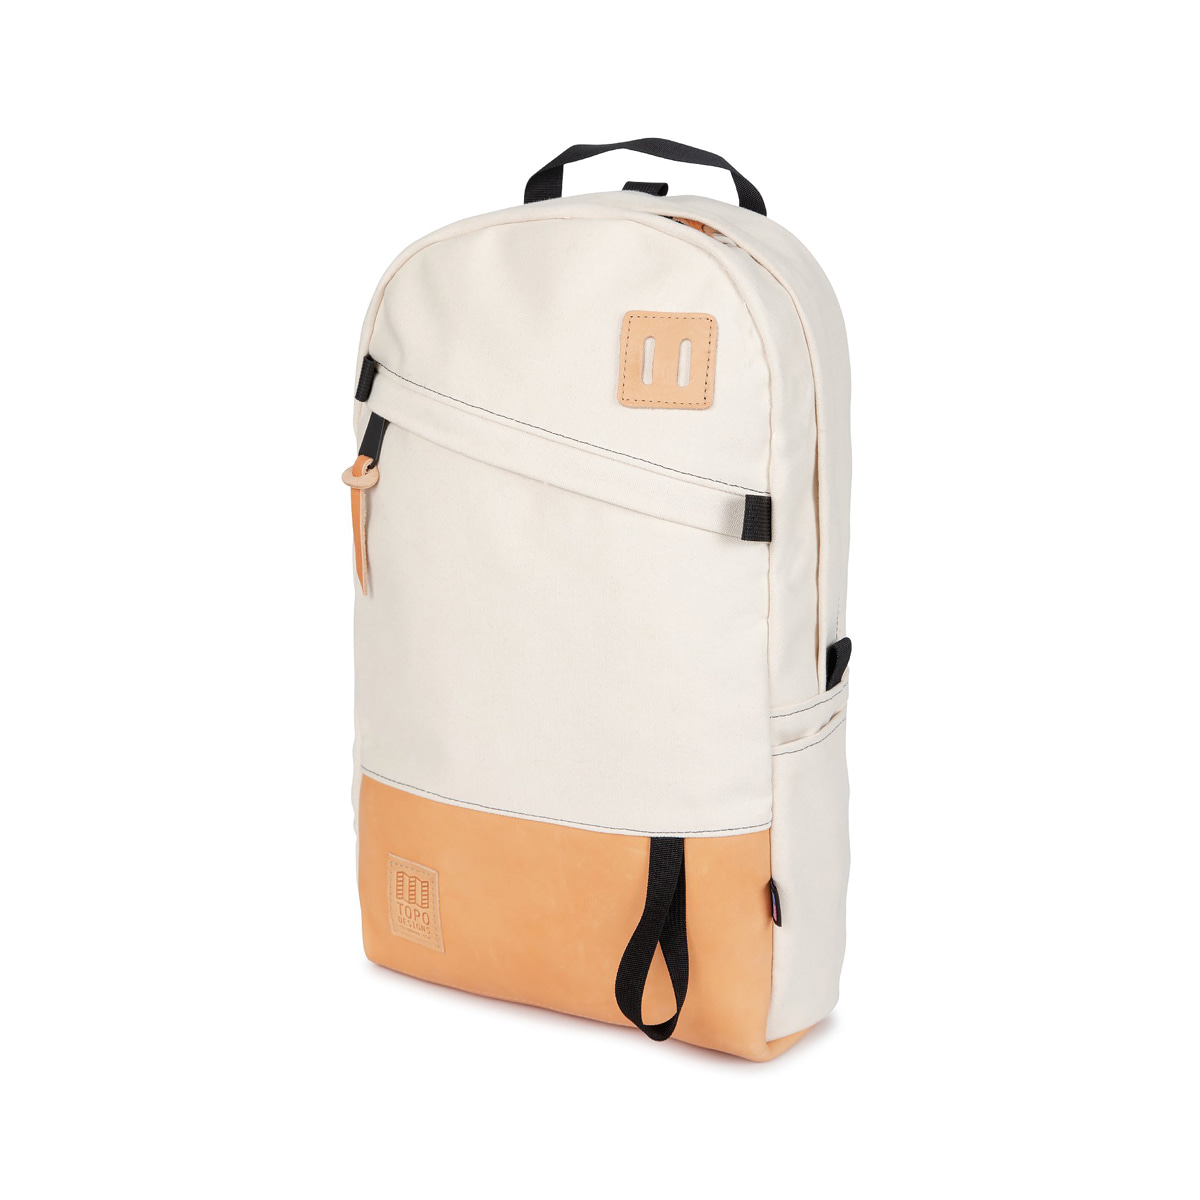 Best Backpack for College